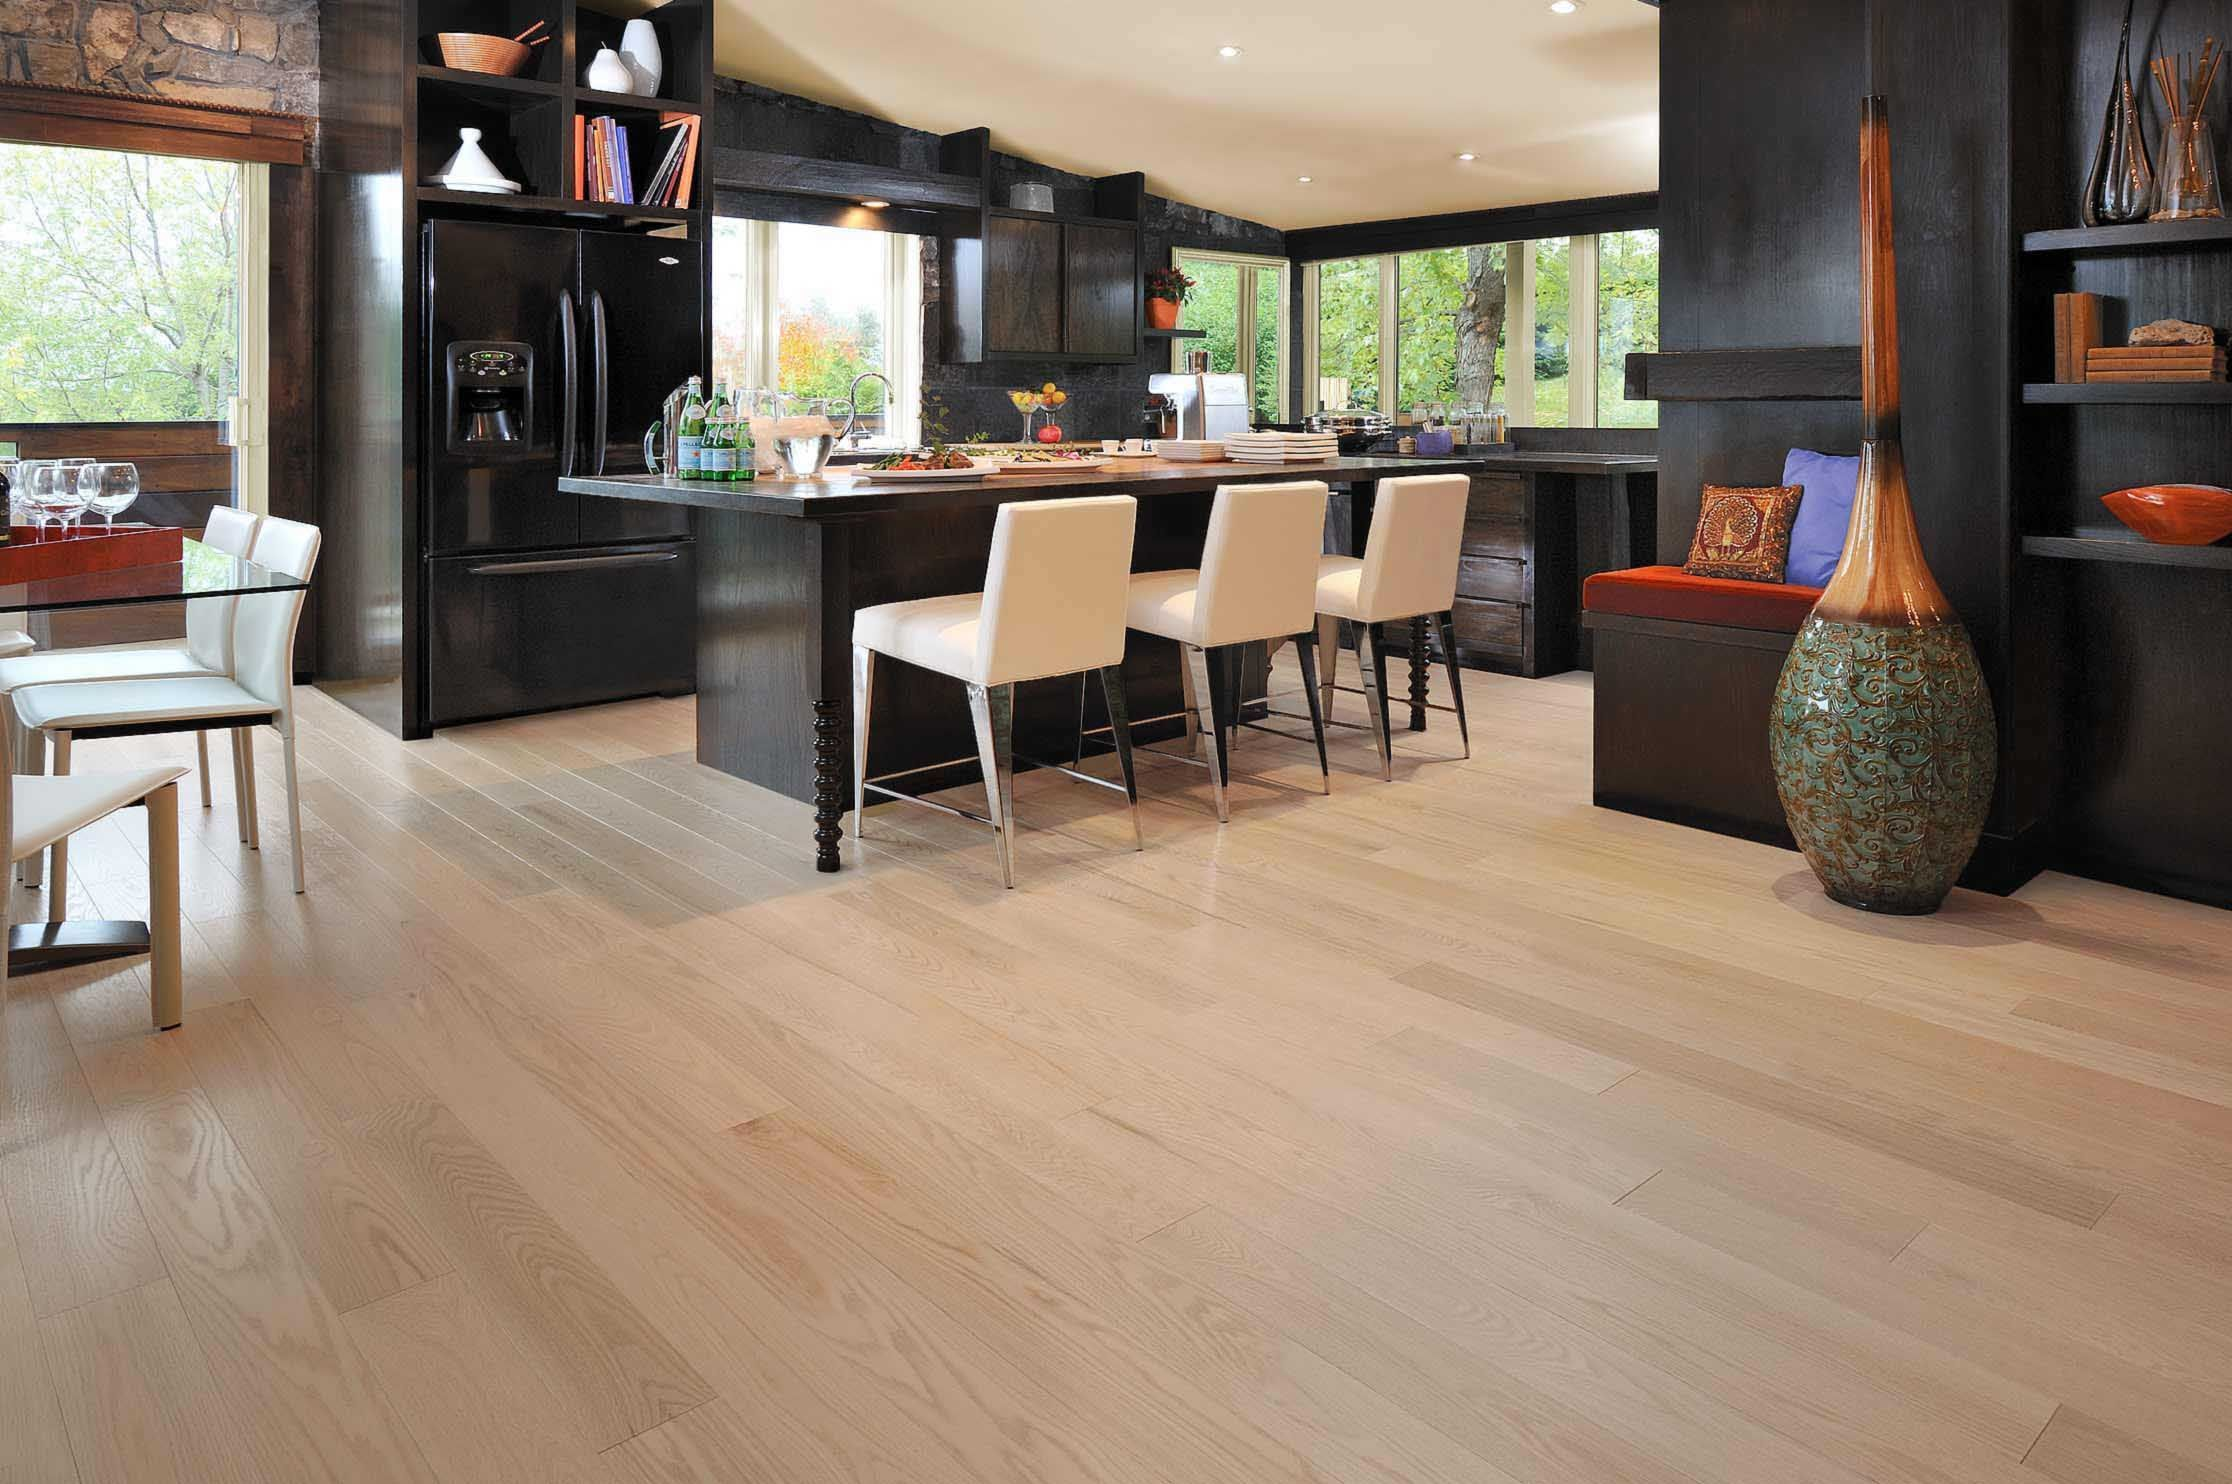 1000 images about wood flooring on pinterest red oak hardwood floors and flooring best hardwoods for furniture